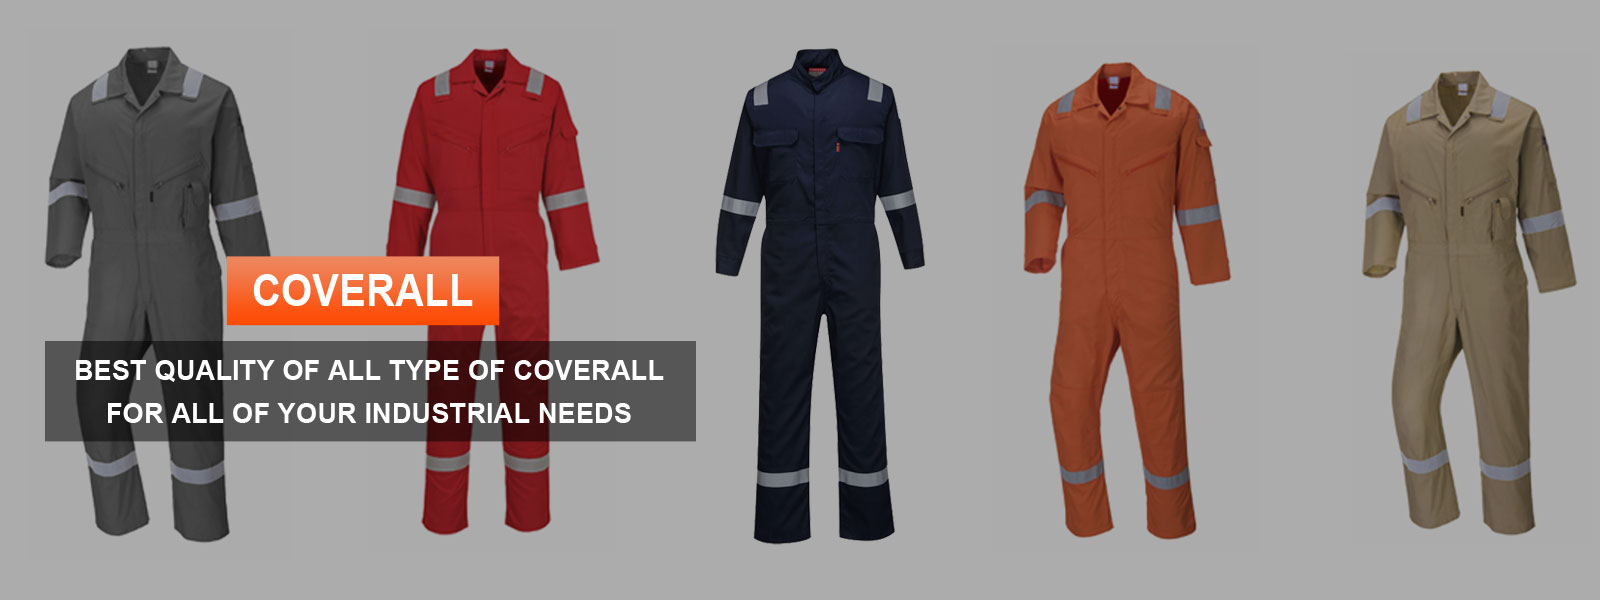 Coverall Manufacturers in Senegal